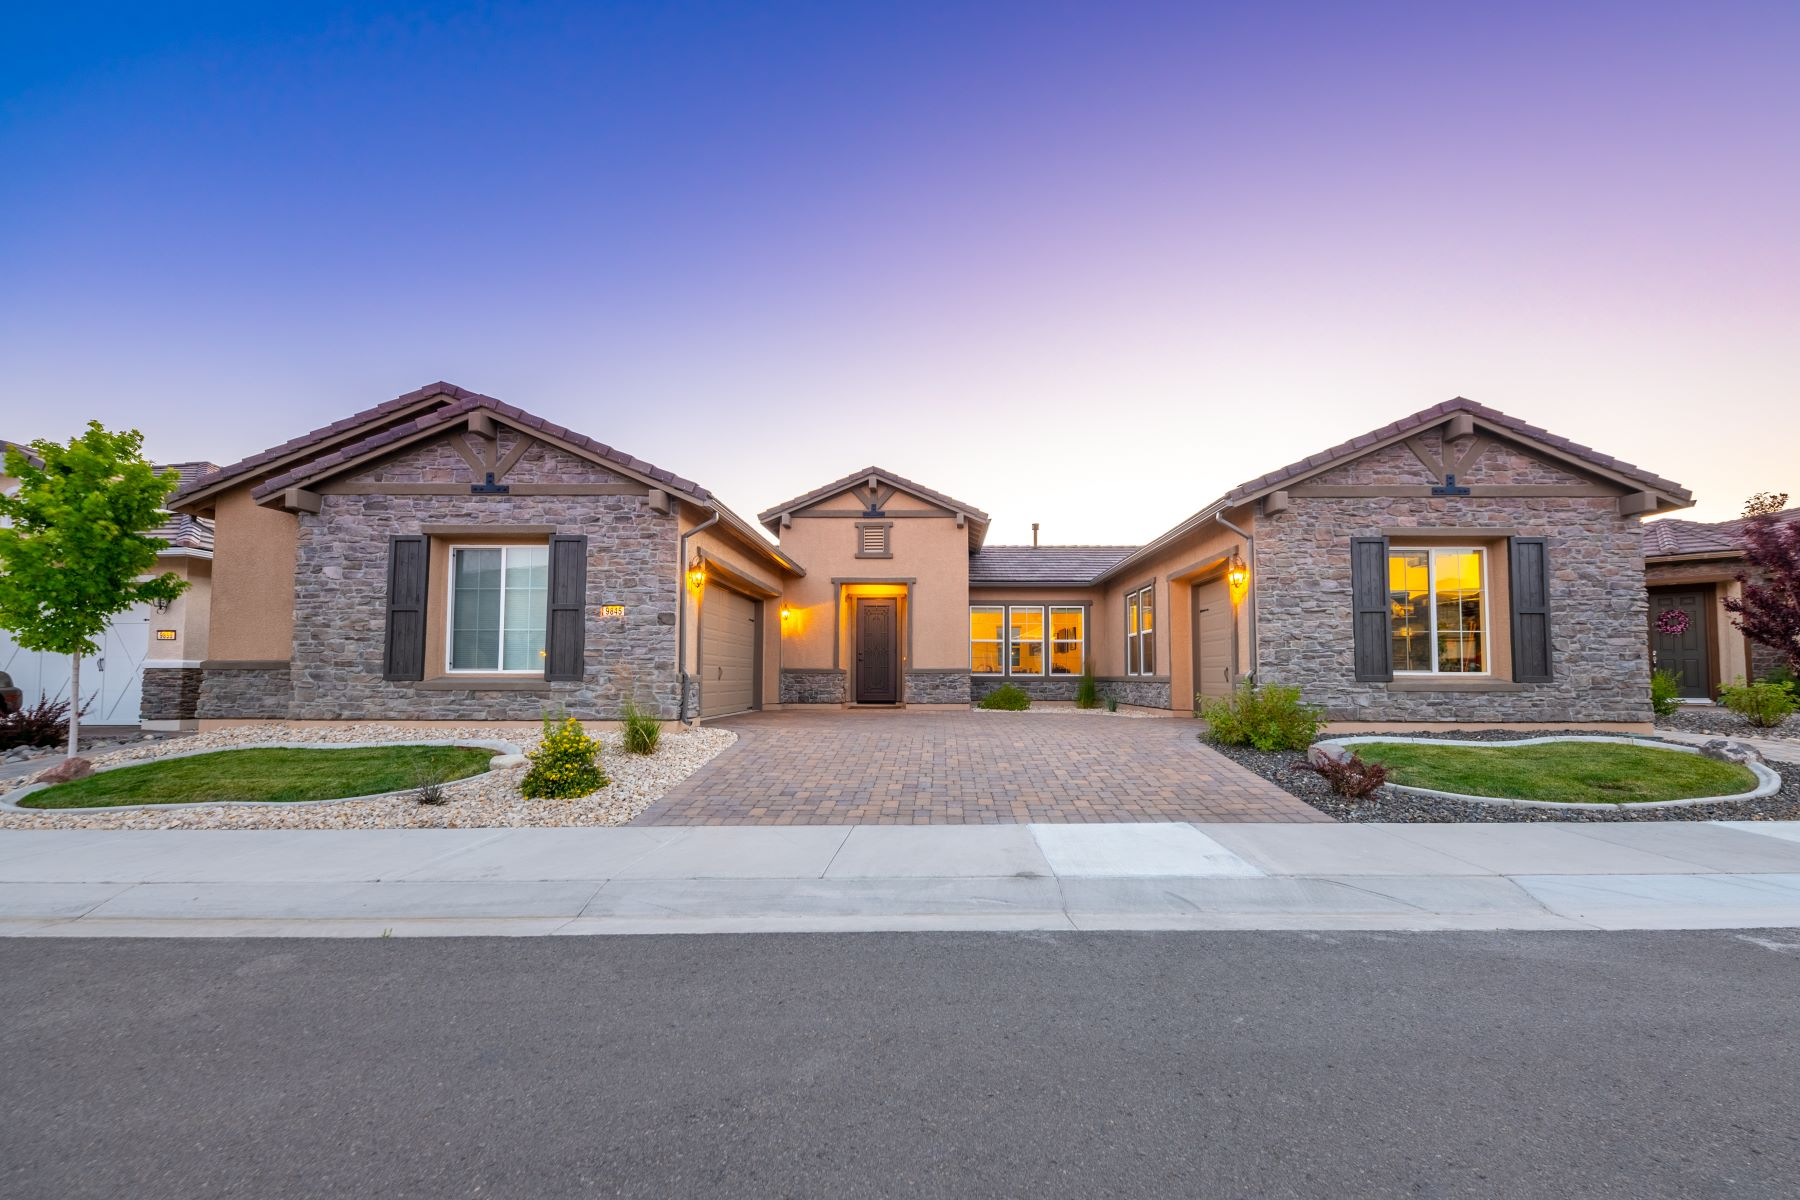 Single Family Homes for Sale at Regency at Damonte Ranch 9845 Shadowless Trail Reno, Nevada 89521 United States